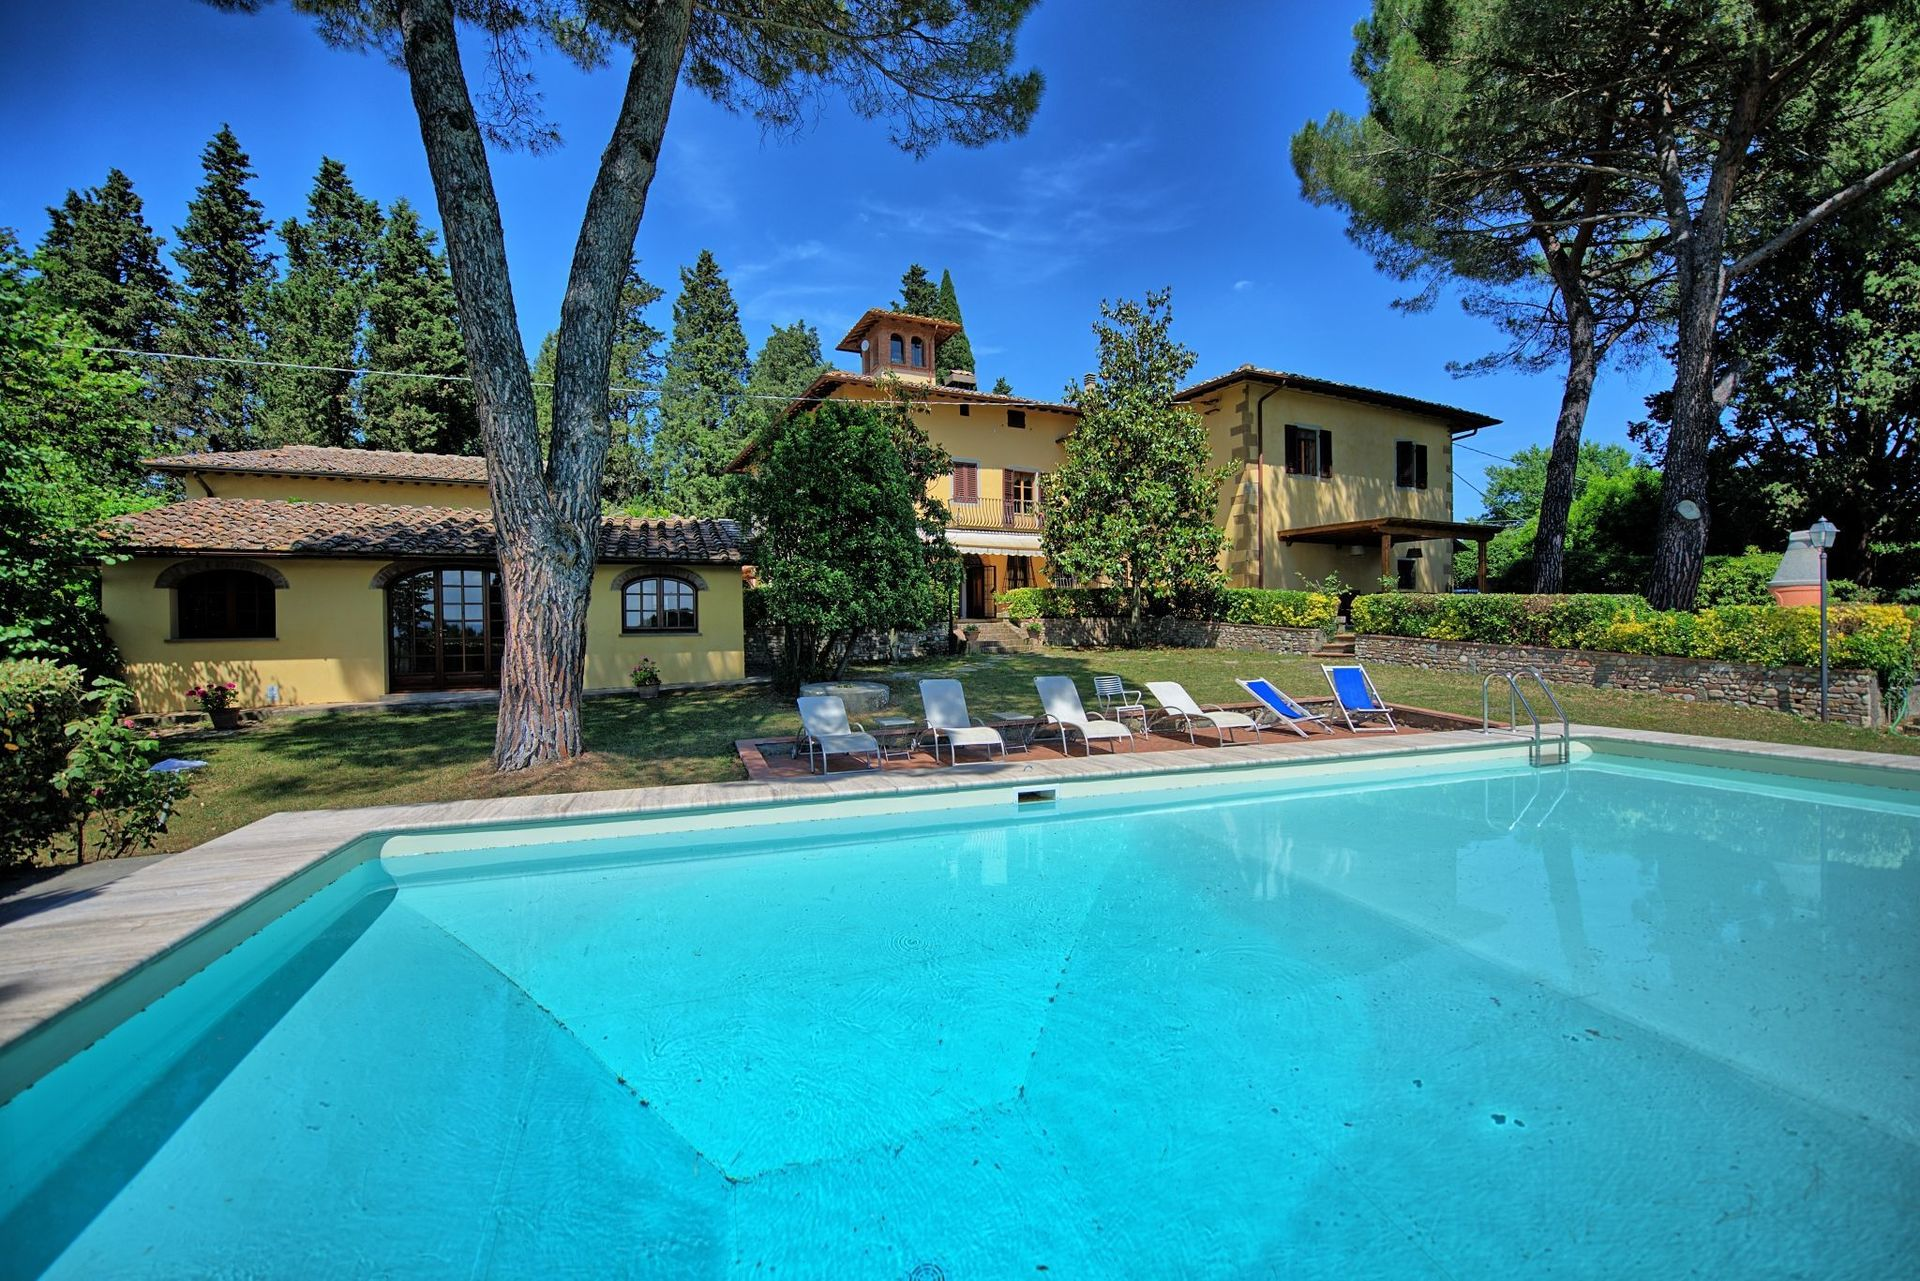 certaldo villa vacation rental villa orchidea that sleeps 15